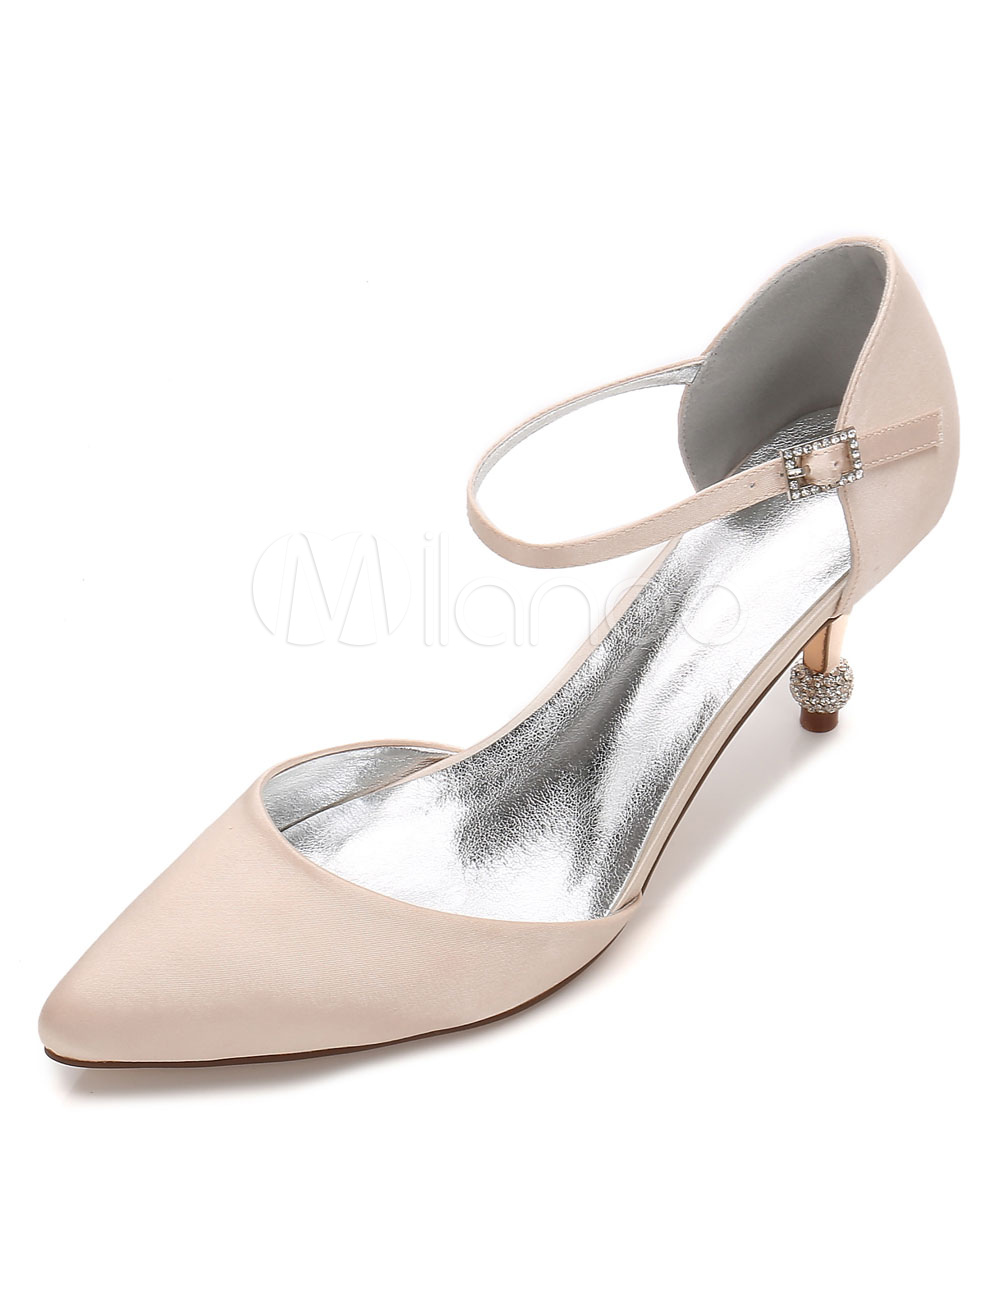 Silver Wedding Shoes Pointed Toe Rhinestones Buckle Detail Bridal Shoes For Women